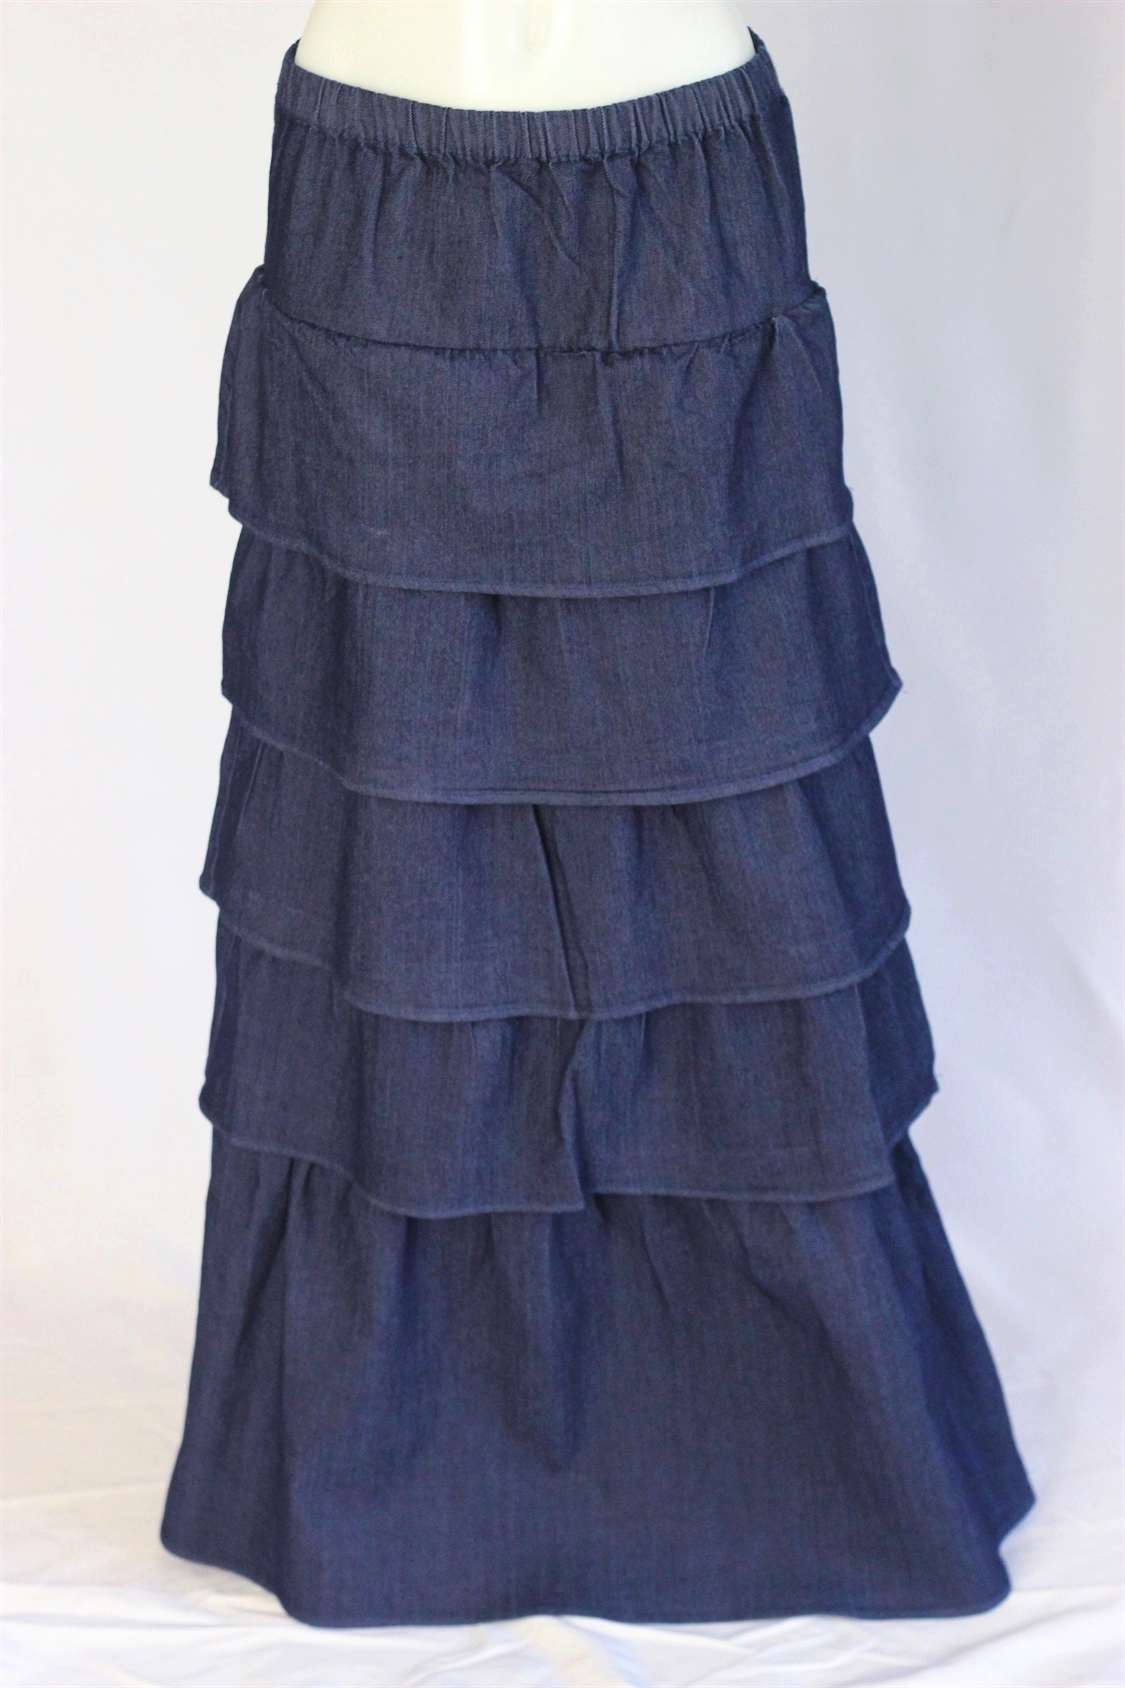 Dilat Tiered Layered Long Jean Skirt Sizes 2 12